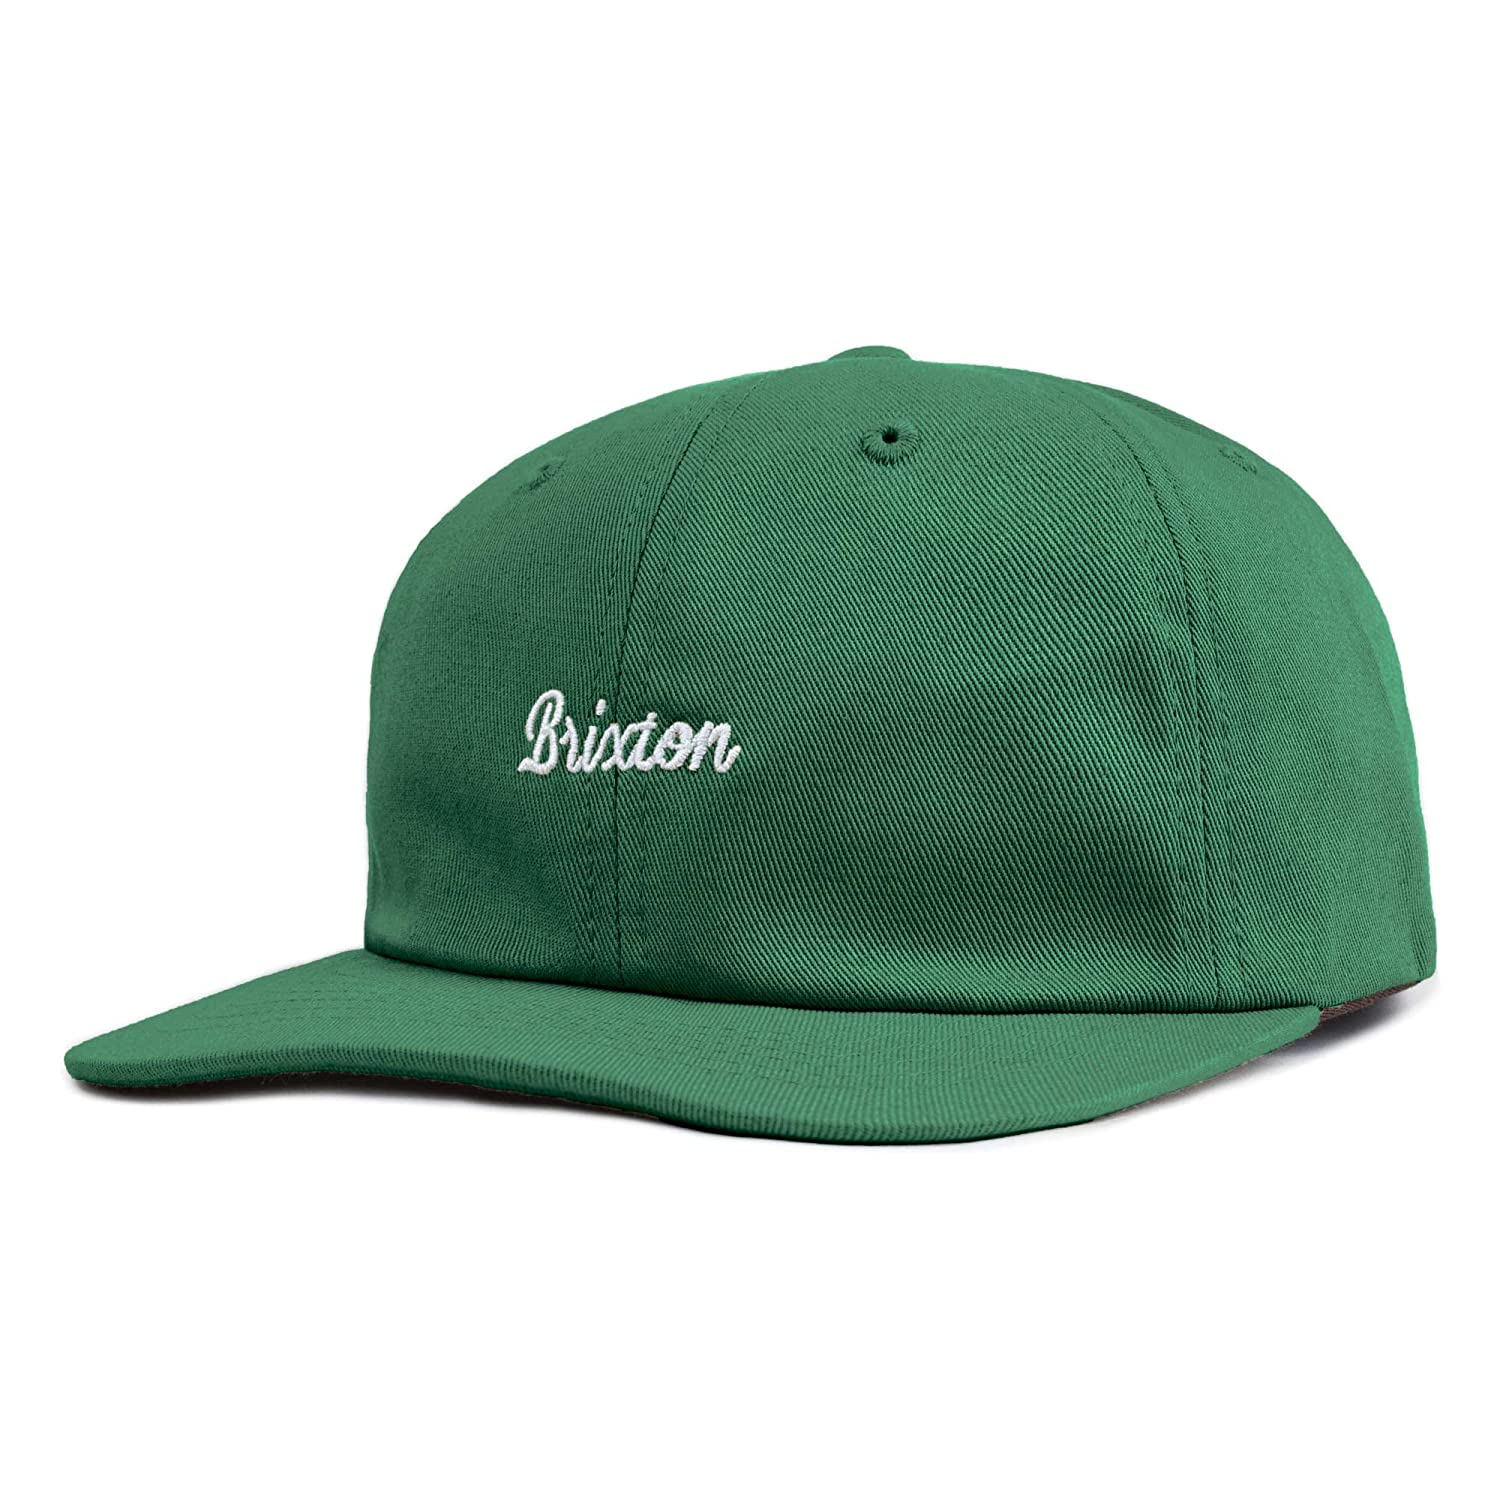 79e776952da Brixton Hats Watkins Baseball Cap - Khaki  Amazon.co.uk  Sports   Outdoors